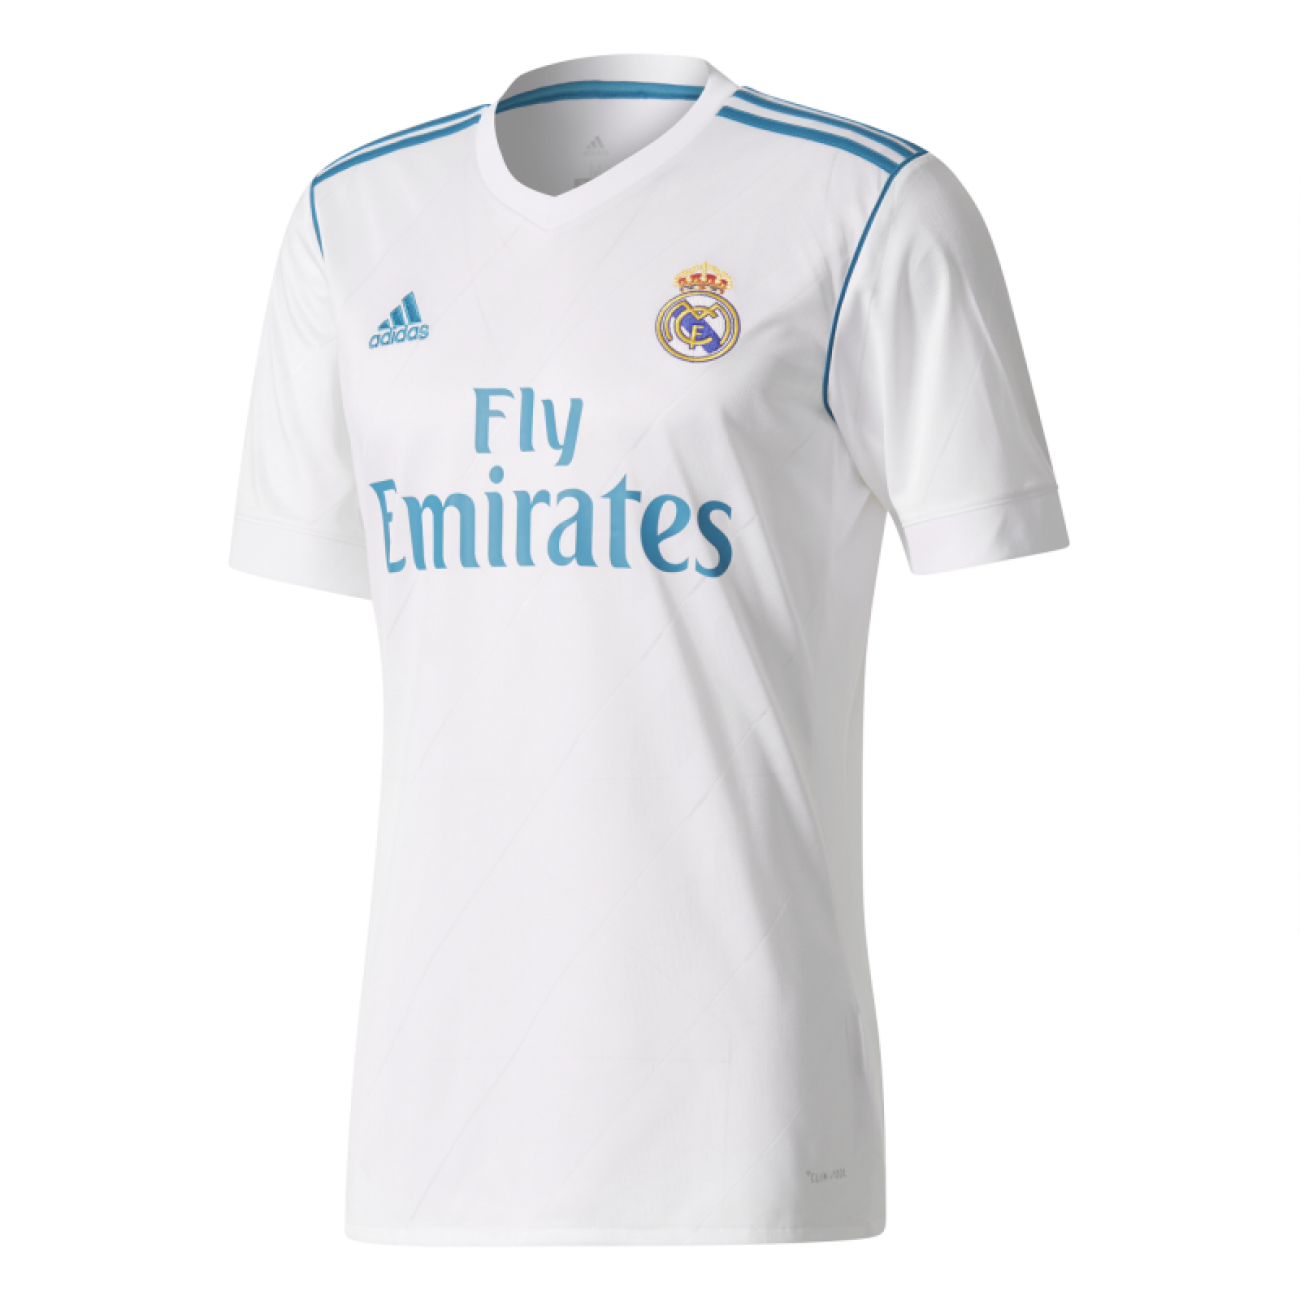 b1ef611e8c9 Real Madrid Retro Shirt 2017 2018